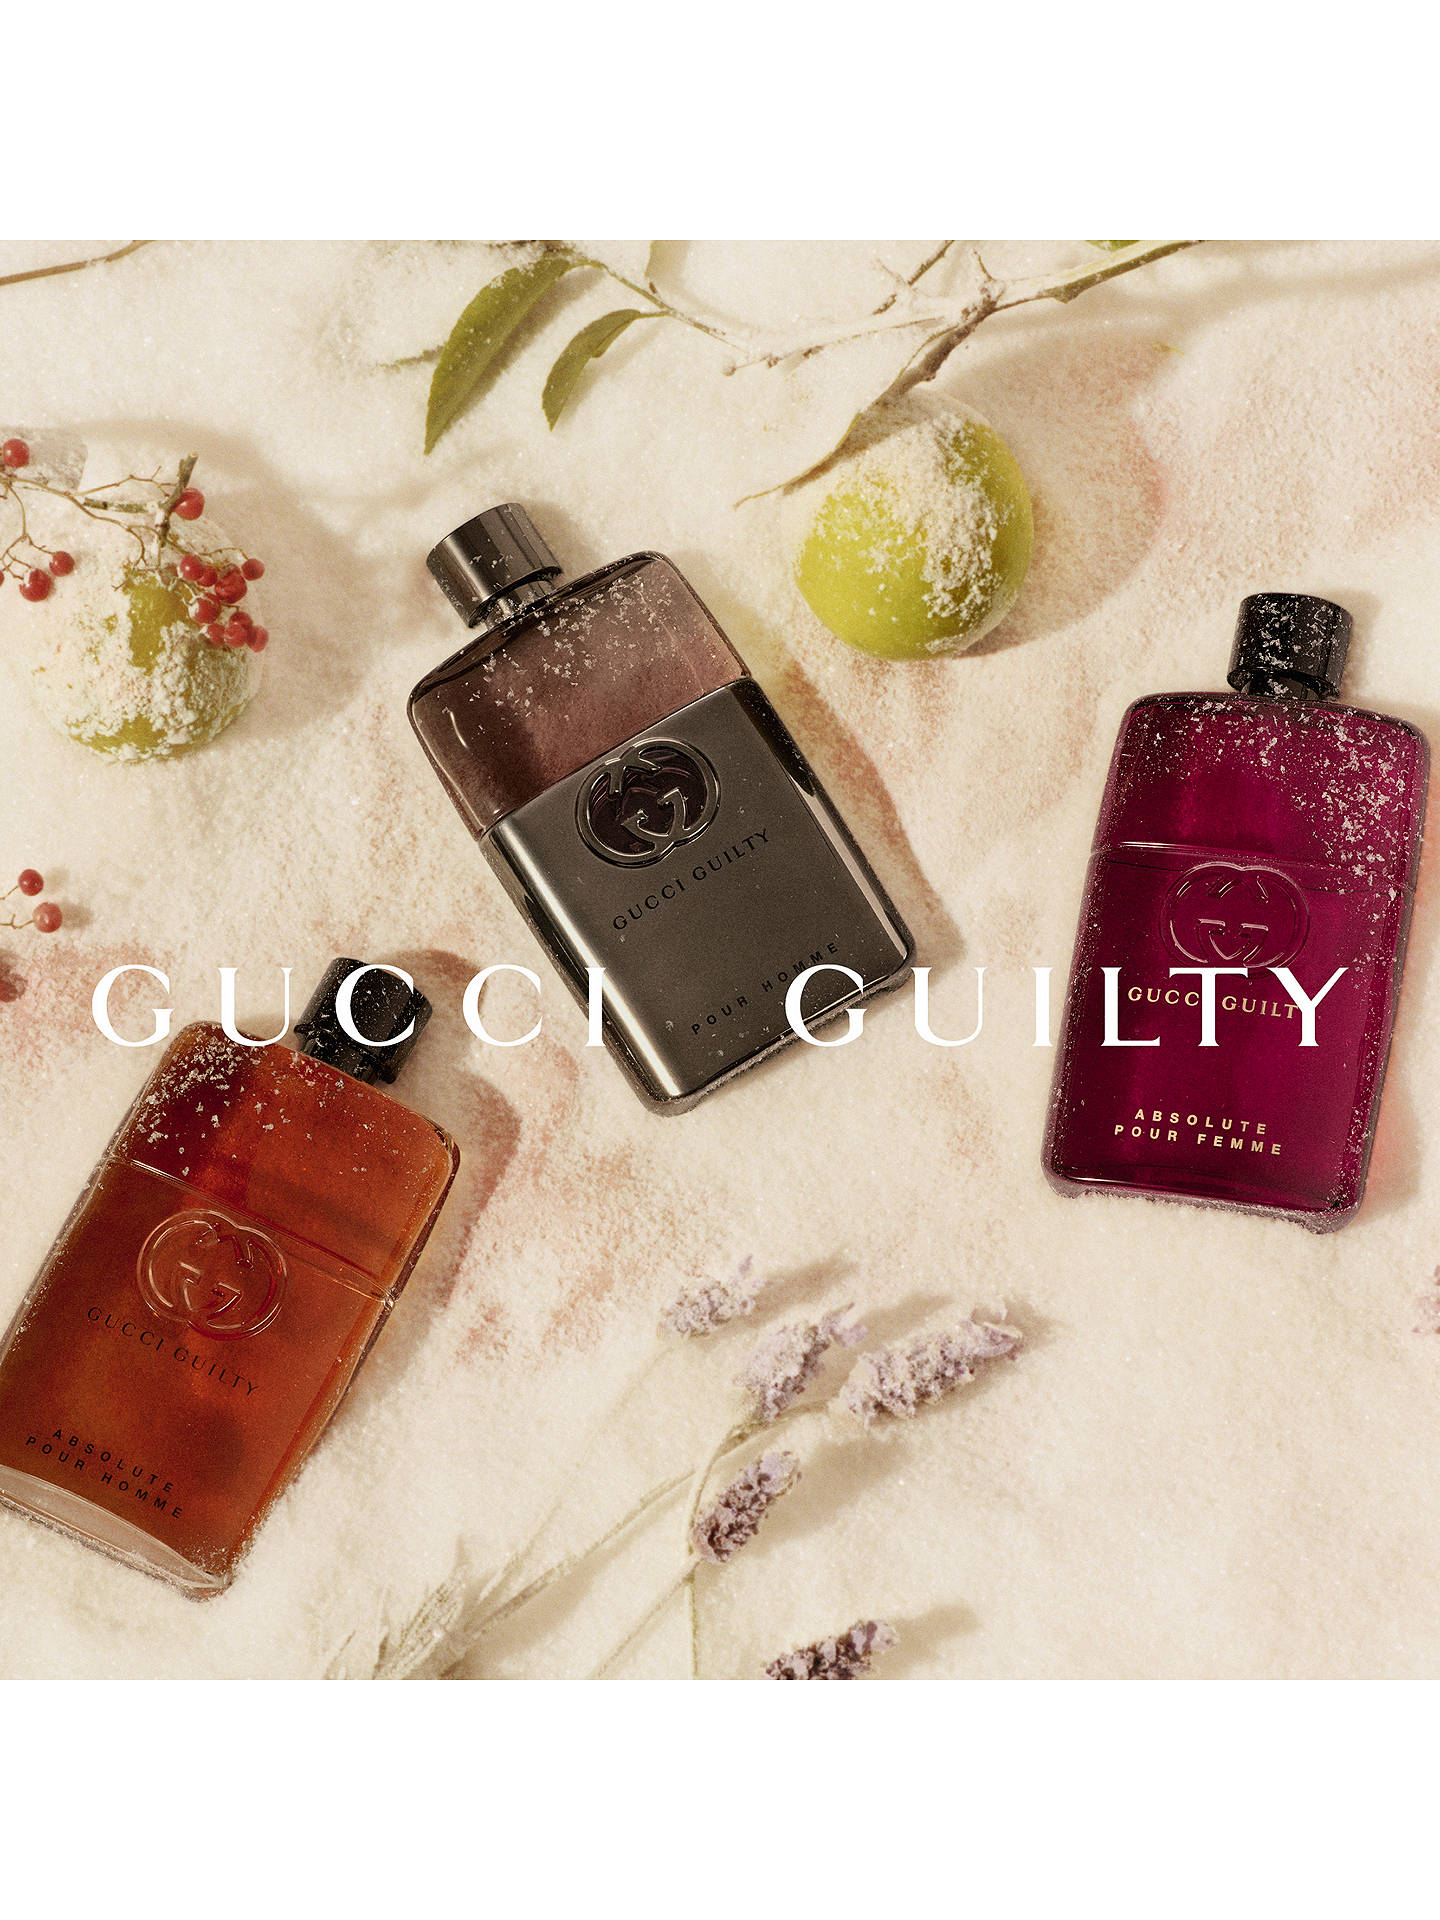 Gucci Guilty Absolute Pour Femme Eau De Parfum At John Lewis Partners